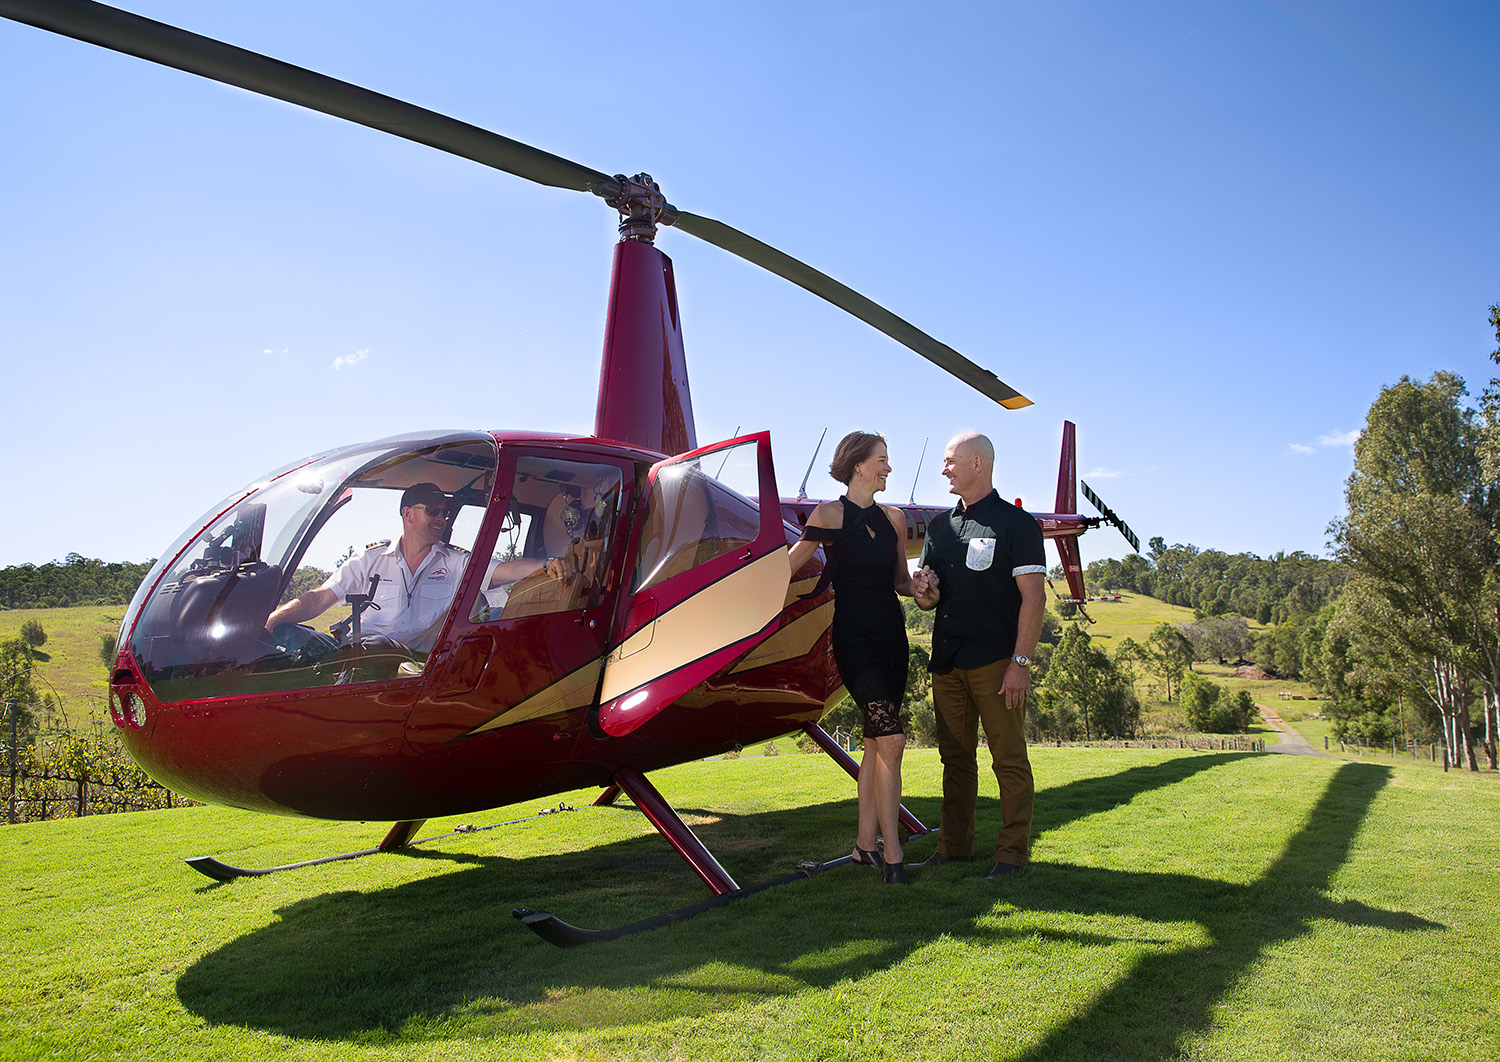 Wine tour, Helicopter Wine tour, Winery, Brisbane Wineries, wine tasting. Food, Restaurant.